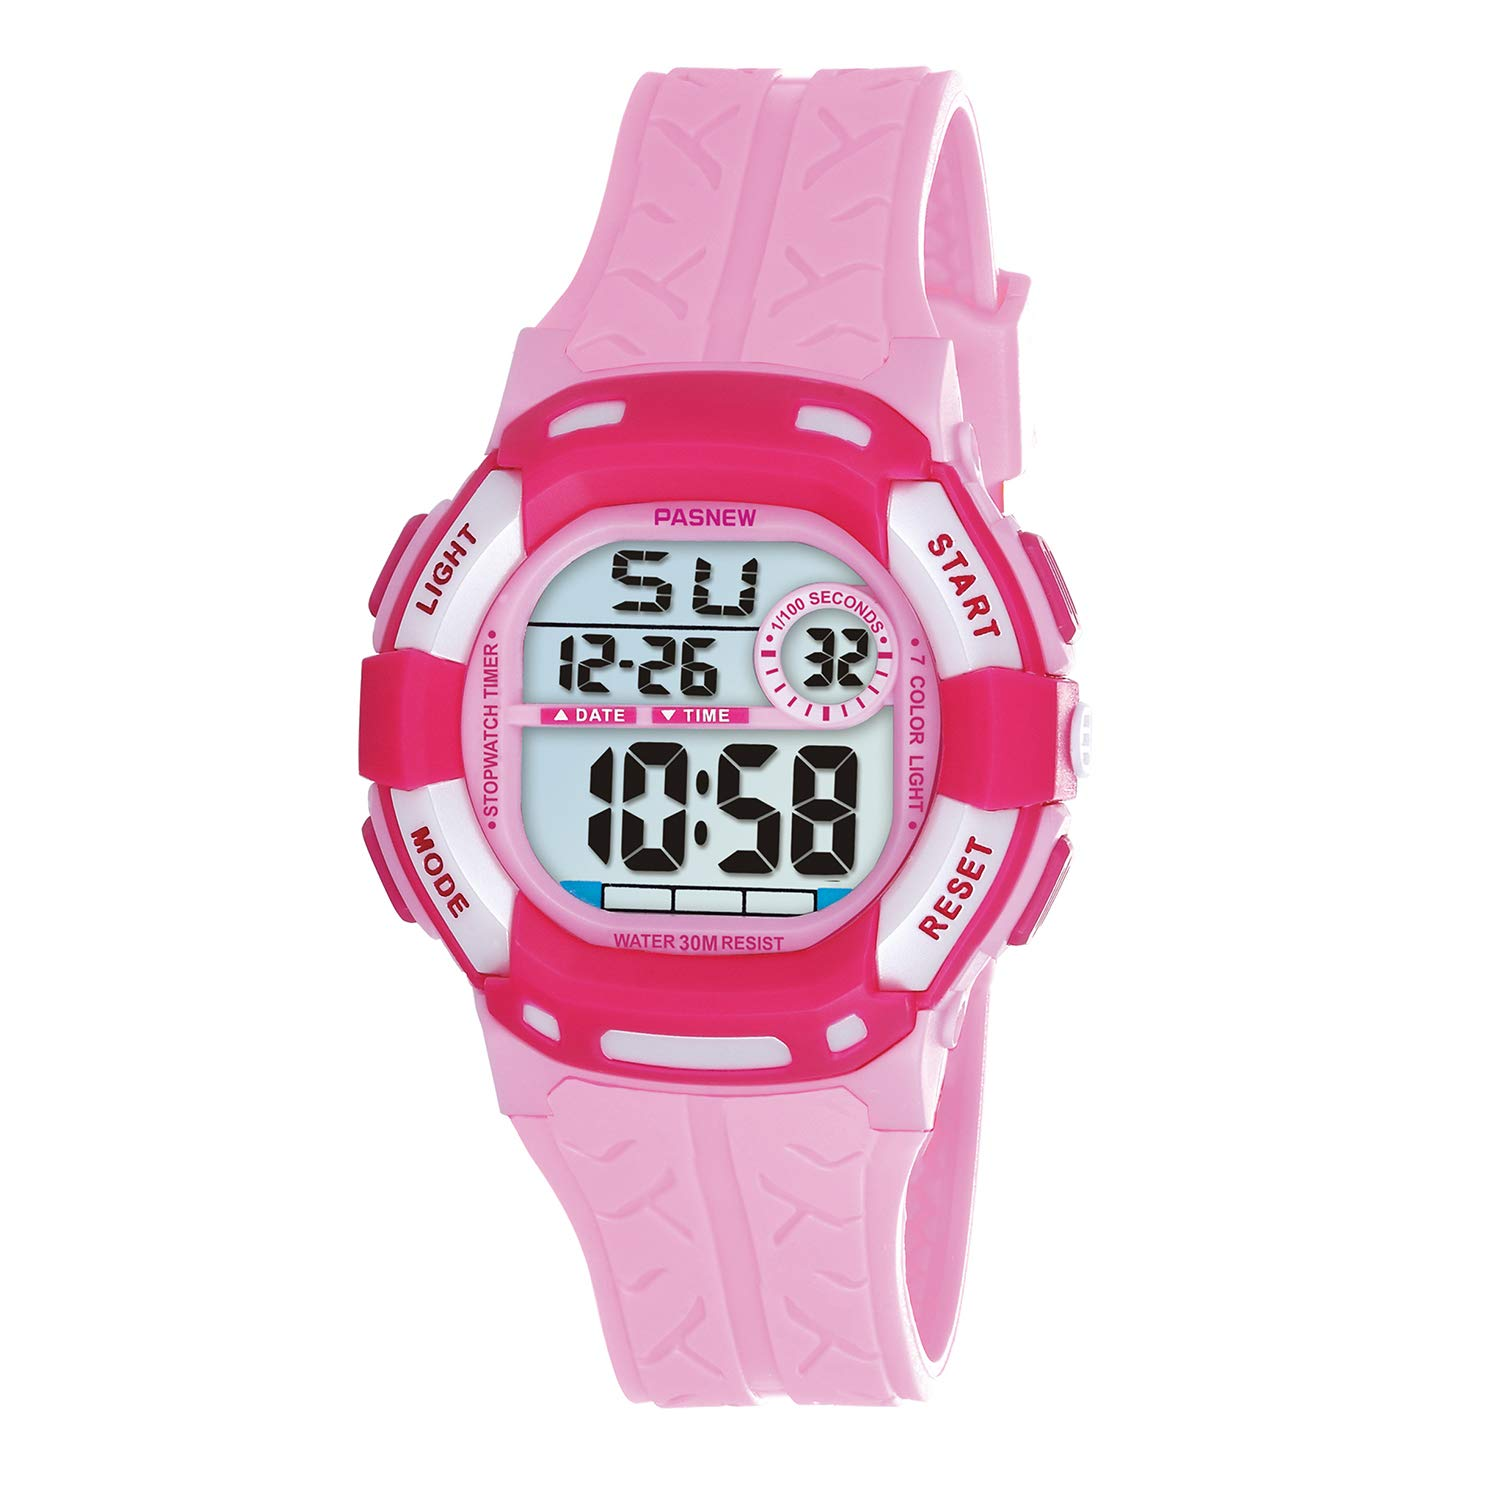 Kids Watches Waterproof 100FT Digital Sports Wristwatch with 7-Color Flashing LED Light Alarm Stopwatch Chime Date Day Pink Rose by PASNEW